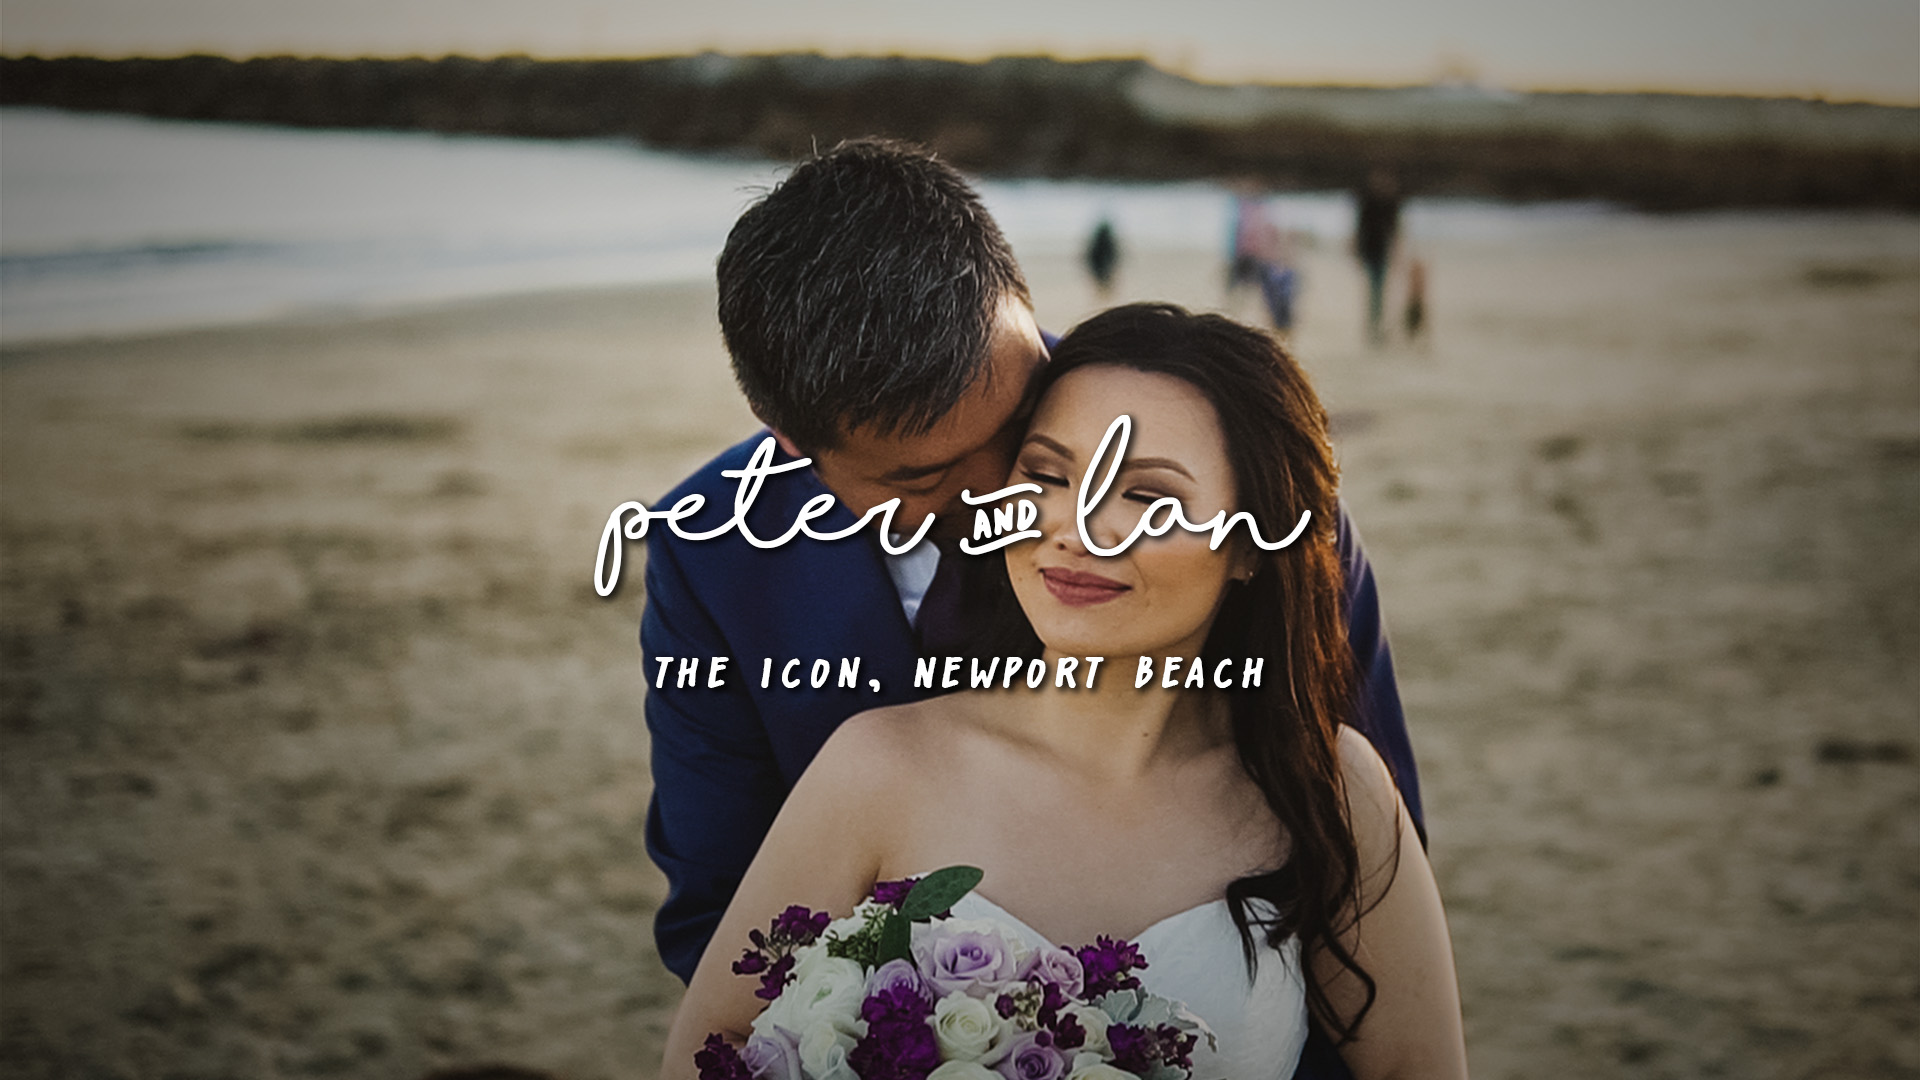 Peter + Lan | Newport Beach, California | The Icon